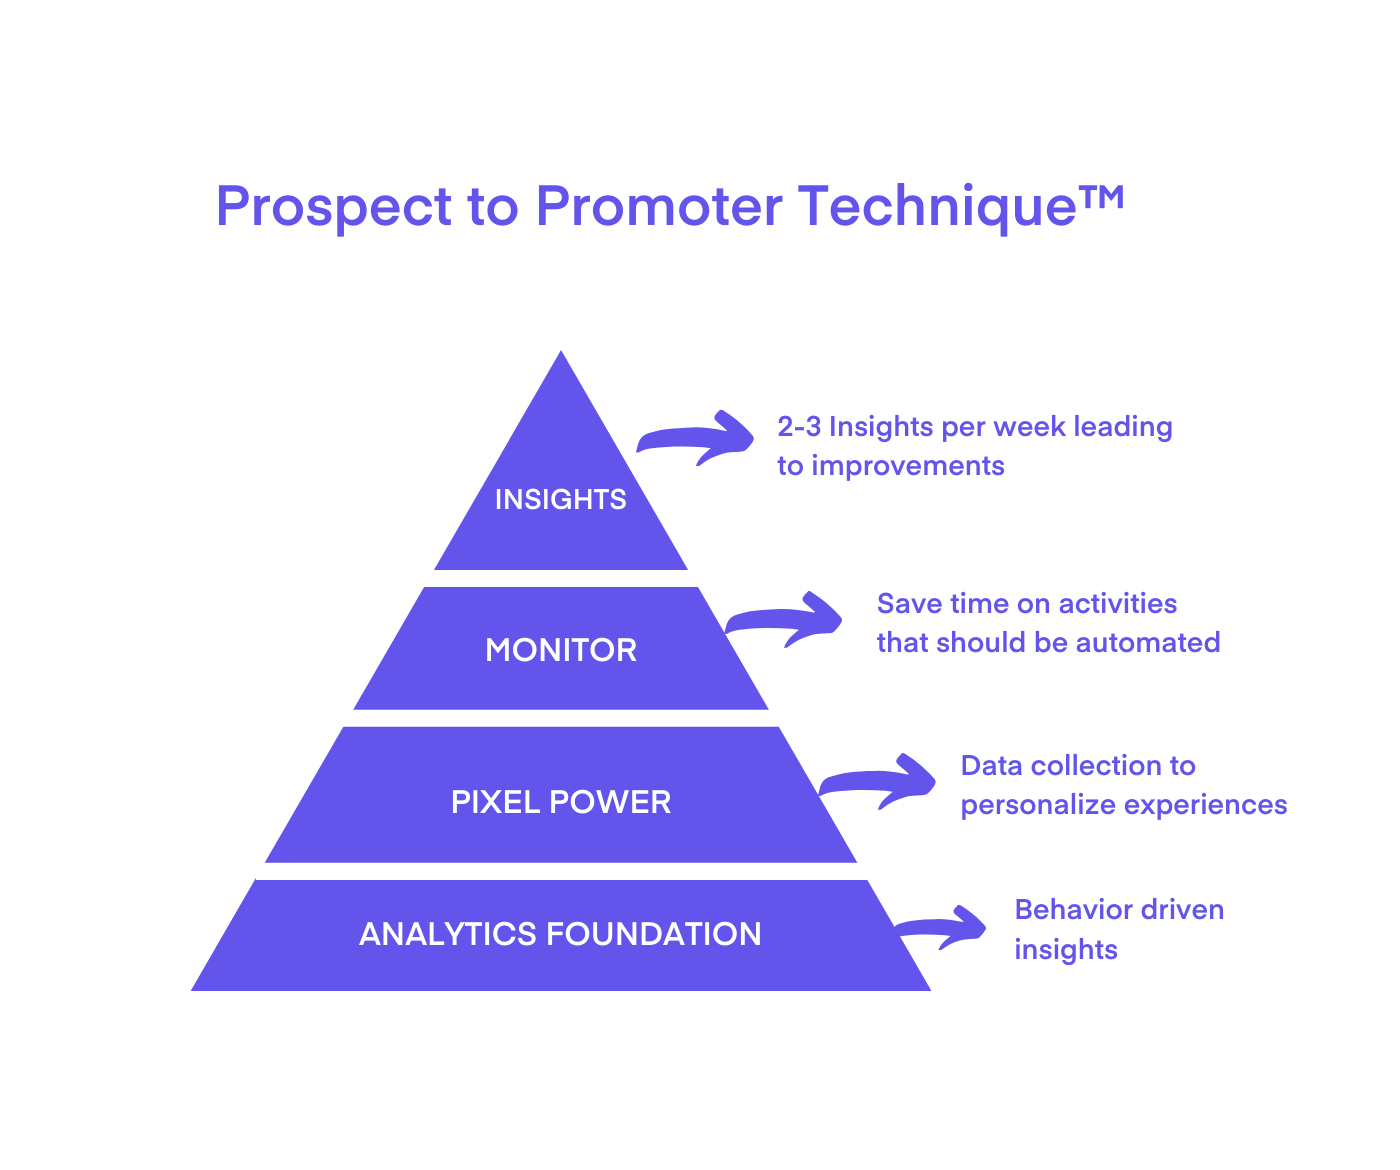 prospect-to-promoter